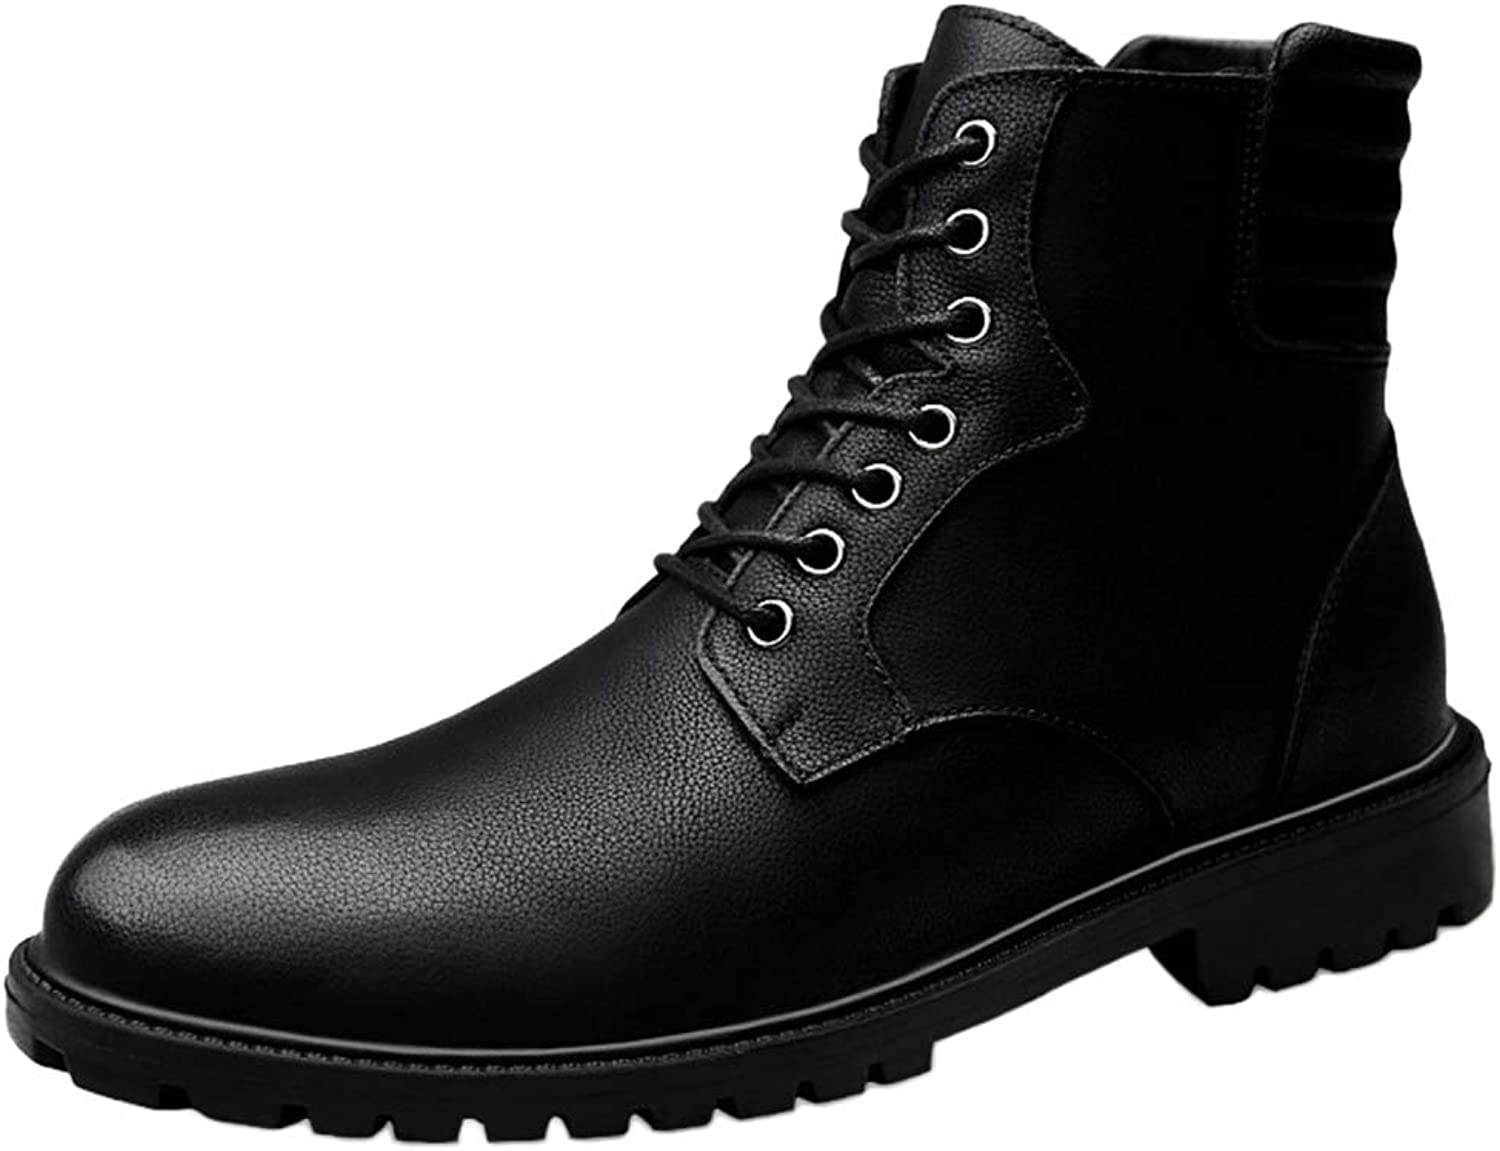 Snfgoij Work Boots Mens Lightweight Waterproof Trainers shoes Autumn and Winter Martin Boots Leather Retro High